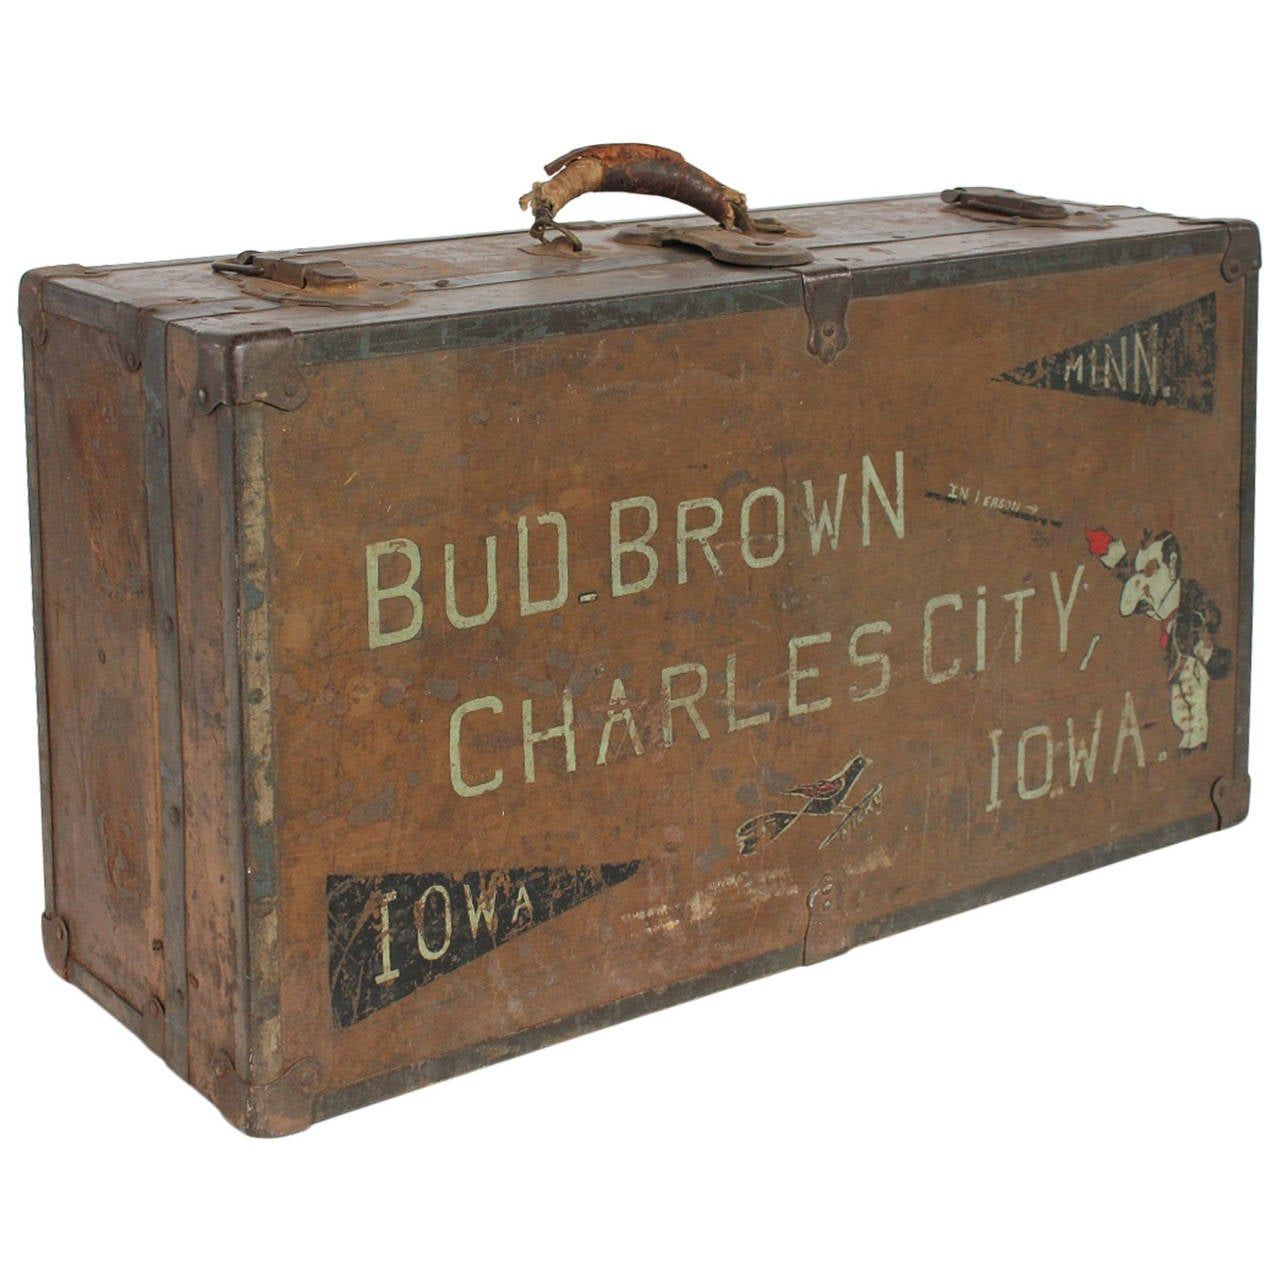 Vintage carnival magician suitcase from charles city iowa for The vintage suitcase